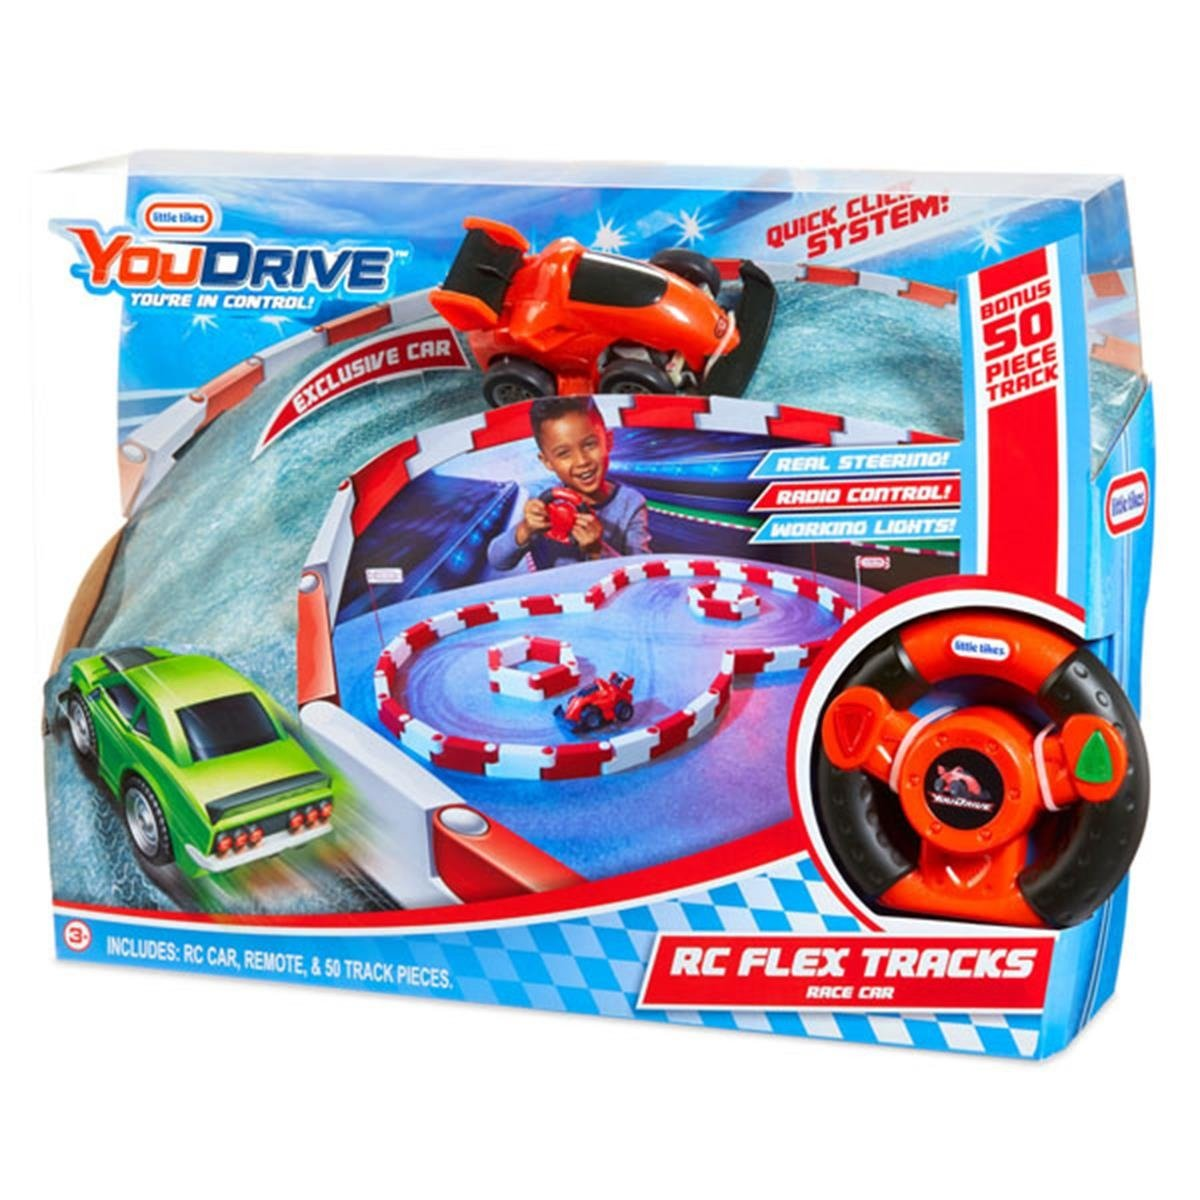 LITTLE TIKES YouDrive Auto sterowane + tor 50 tras